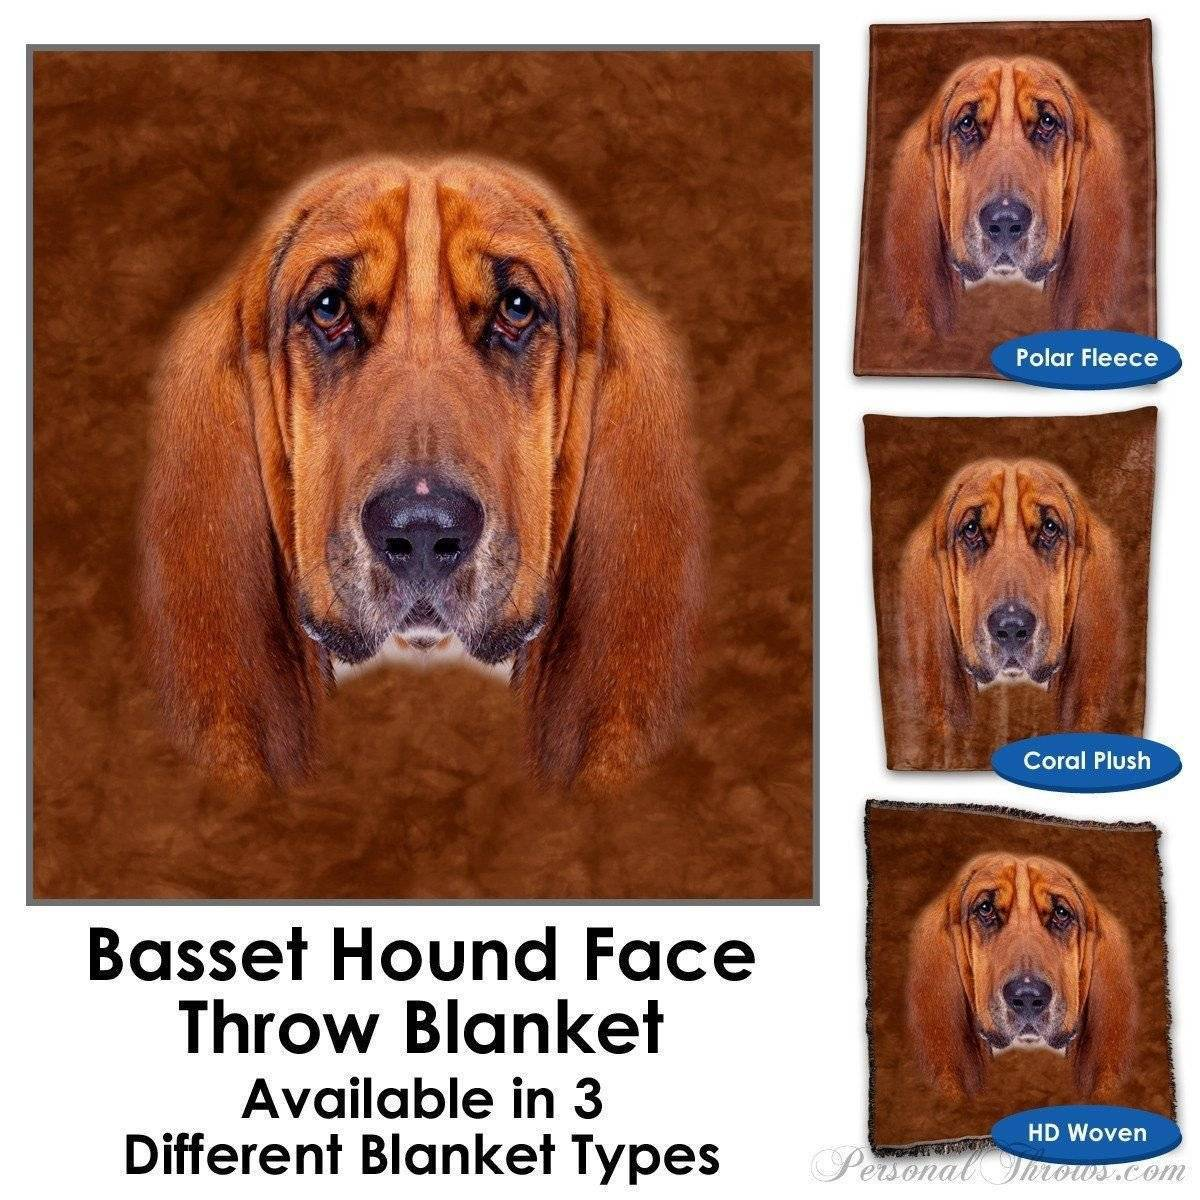 Designer Gifts - Basset Hound Face Throw Blanket